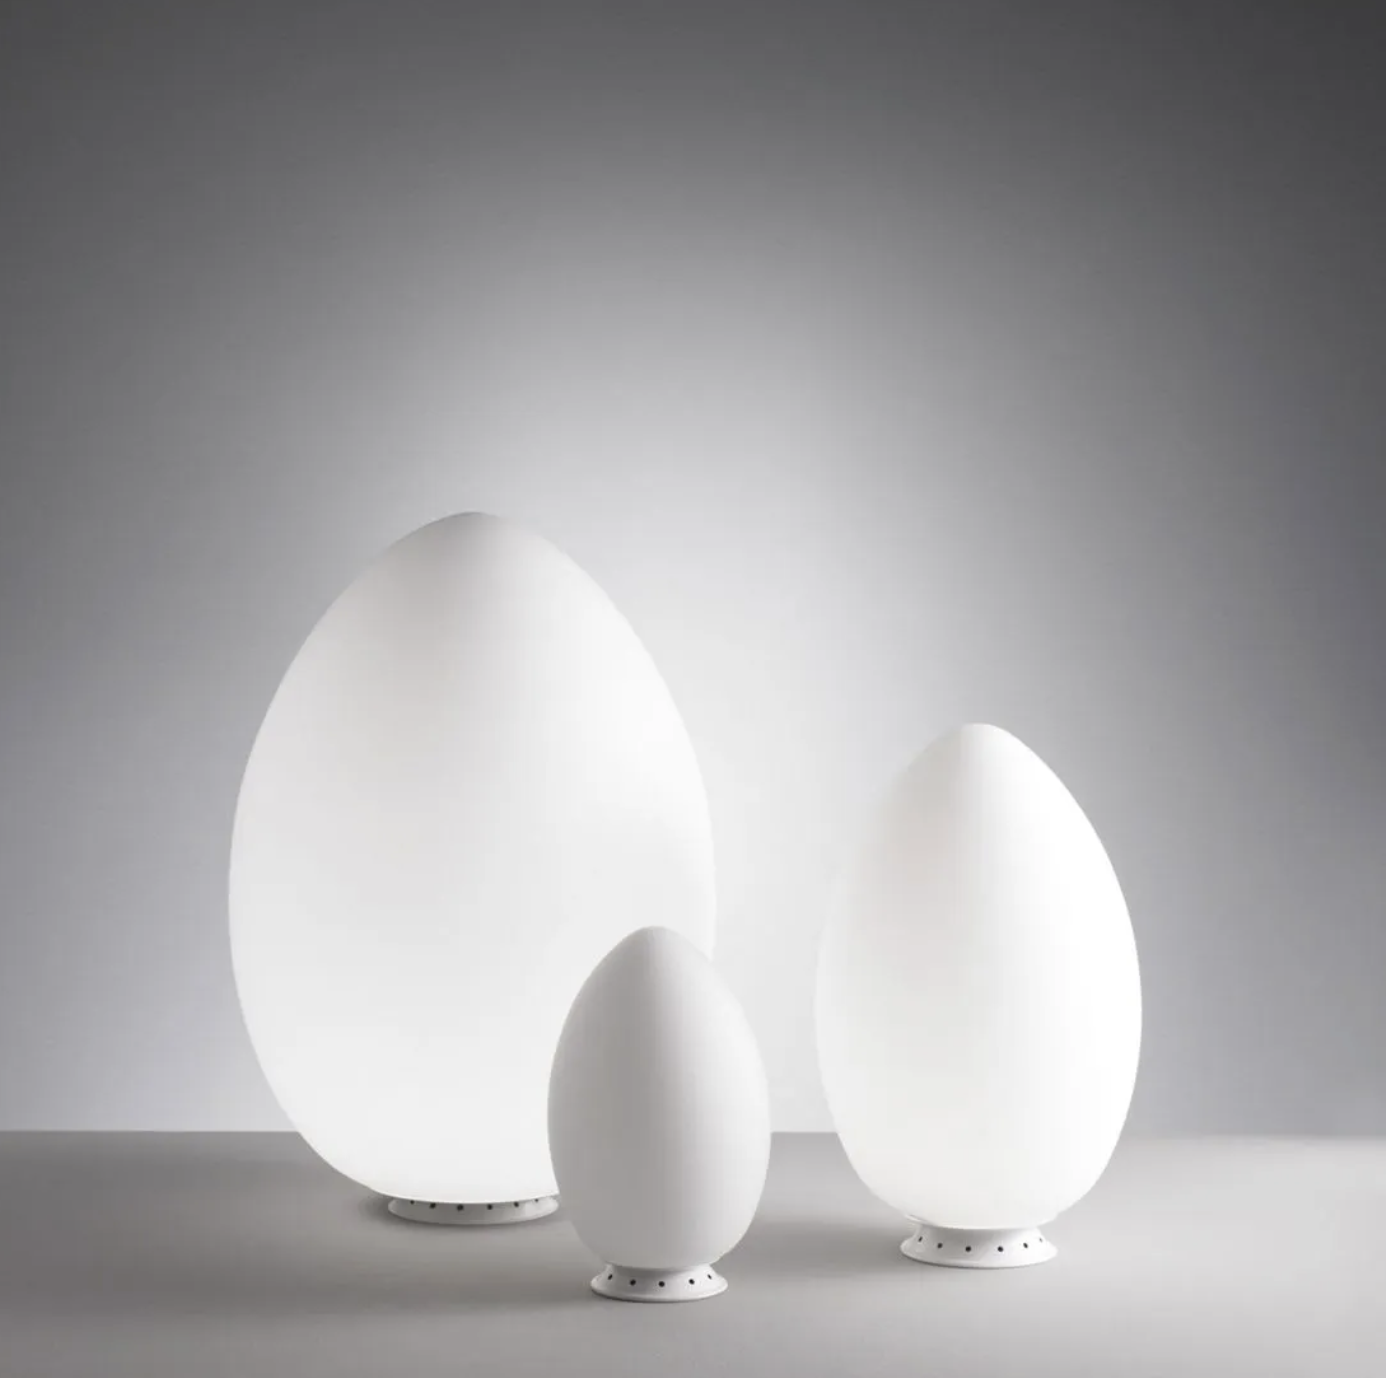 Uovo Table Lamp - A natural form and timeless symbol of perfection, in which symmetry and asymmetry harmoniously coexist. Designed in 1972, the 'shell' of the egg contained a light source: an ironic idea that still works today. As in nature, the shell of the Uovo lamp is the embodiment of absolute lightness, an elegant form in white satin blown glass that gives off a warm, uniform light. Available in three sizes, it has all the versatility of a collection designed for multiple uses: from the small version which serves as a tiny utility lamp to the large version, a veritable light sculpture, protagonist of any space.  Table lamp with diffused light not dimmable. Diffuser made of white blown glass with satin-finish. Base made of white painted metal. Black power cable, plug and switch. European two-pole plug. Bulb not included. | Matter of Stuff